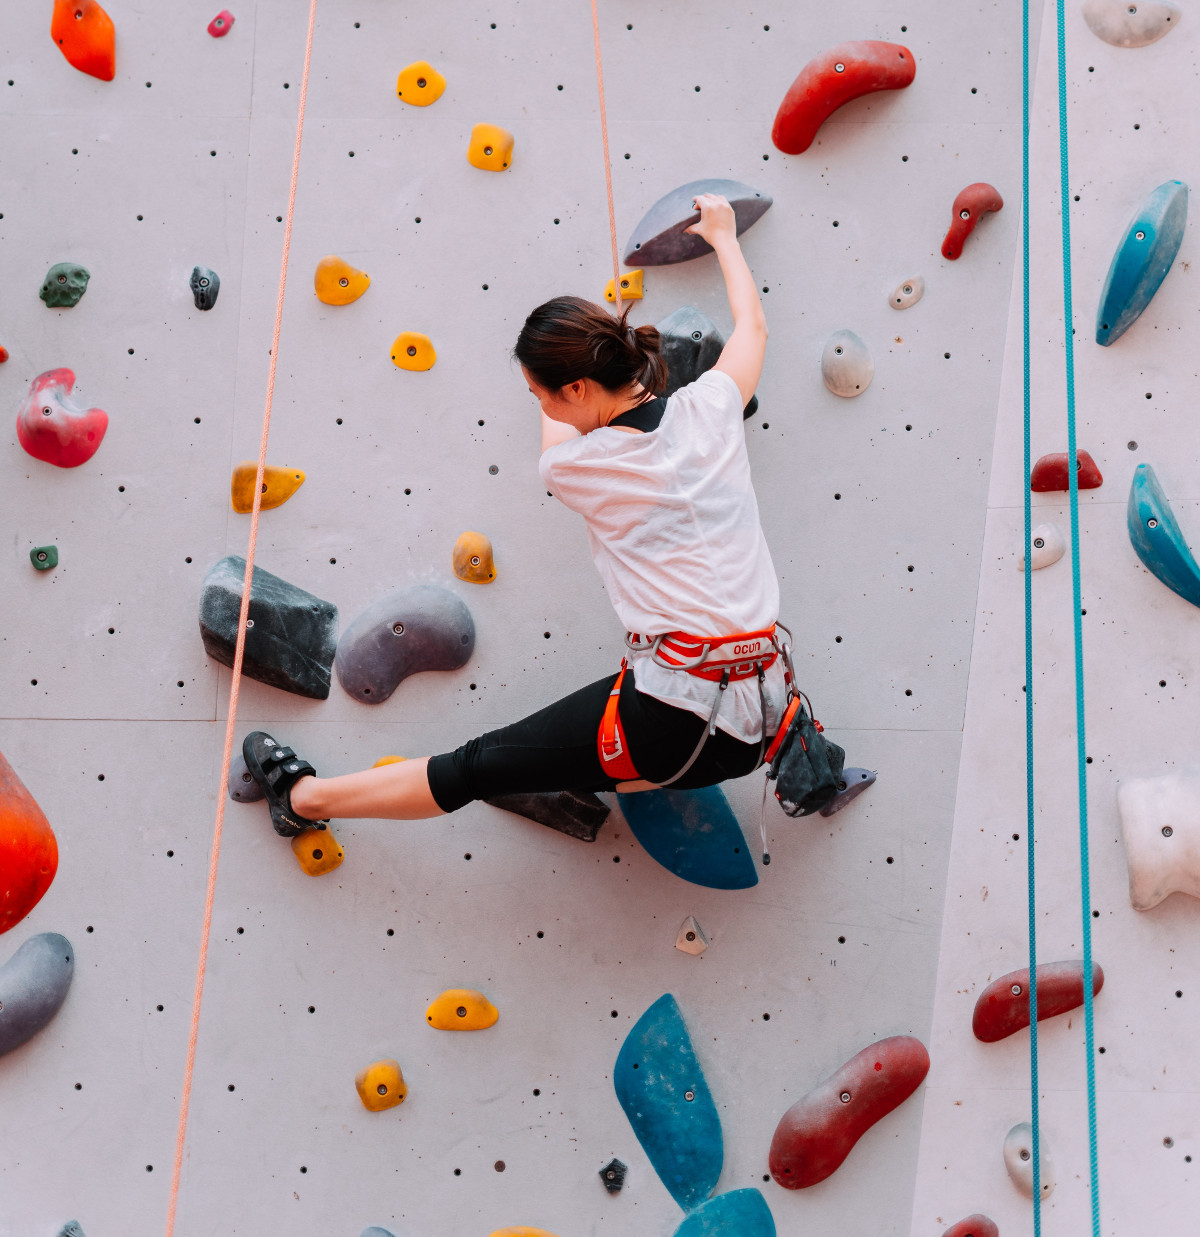 Woman climbing on an obstacle wall